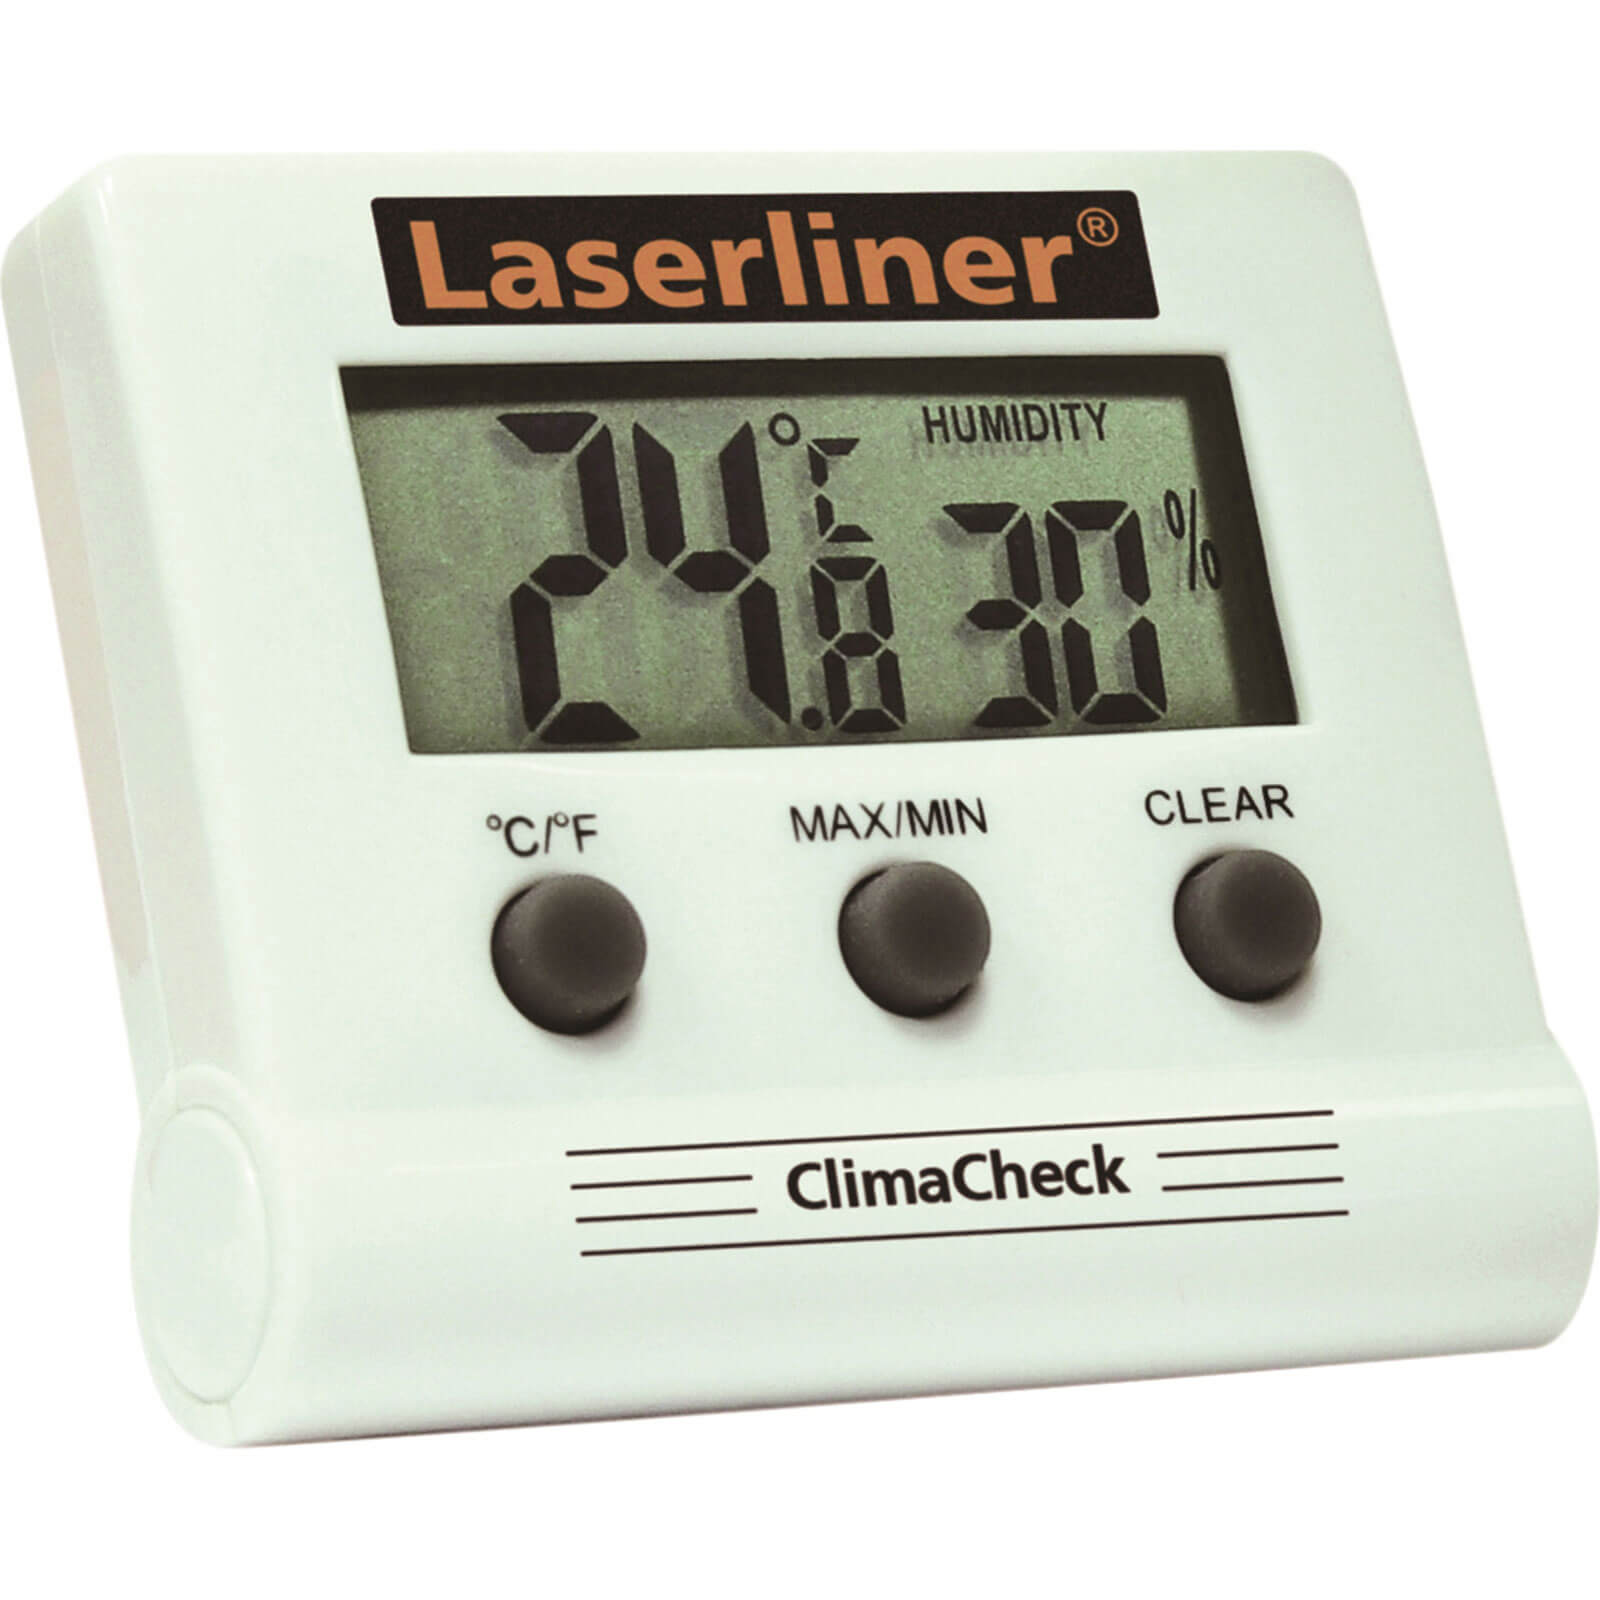 Image of LaserLiner Climacheck Digital Humidity & Temperature